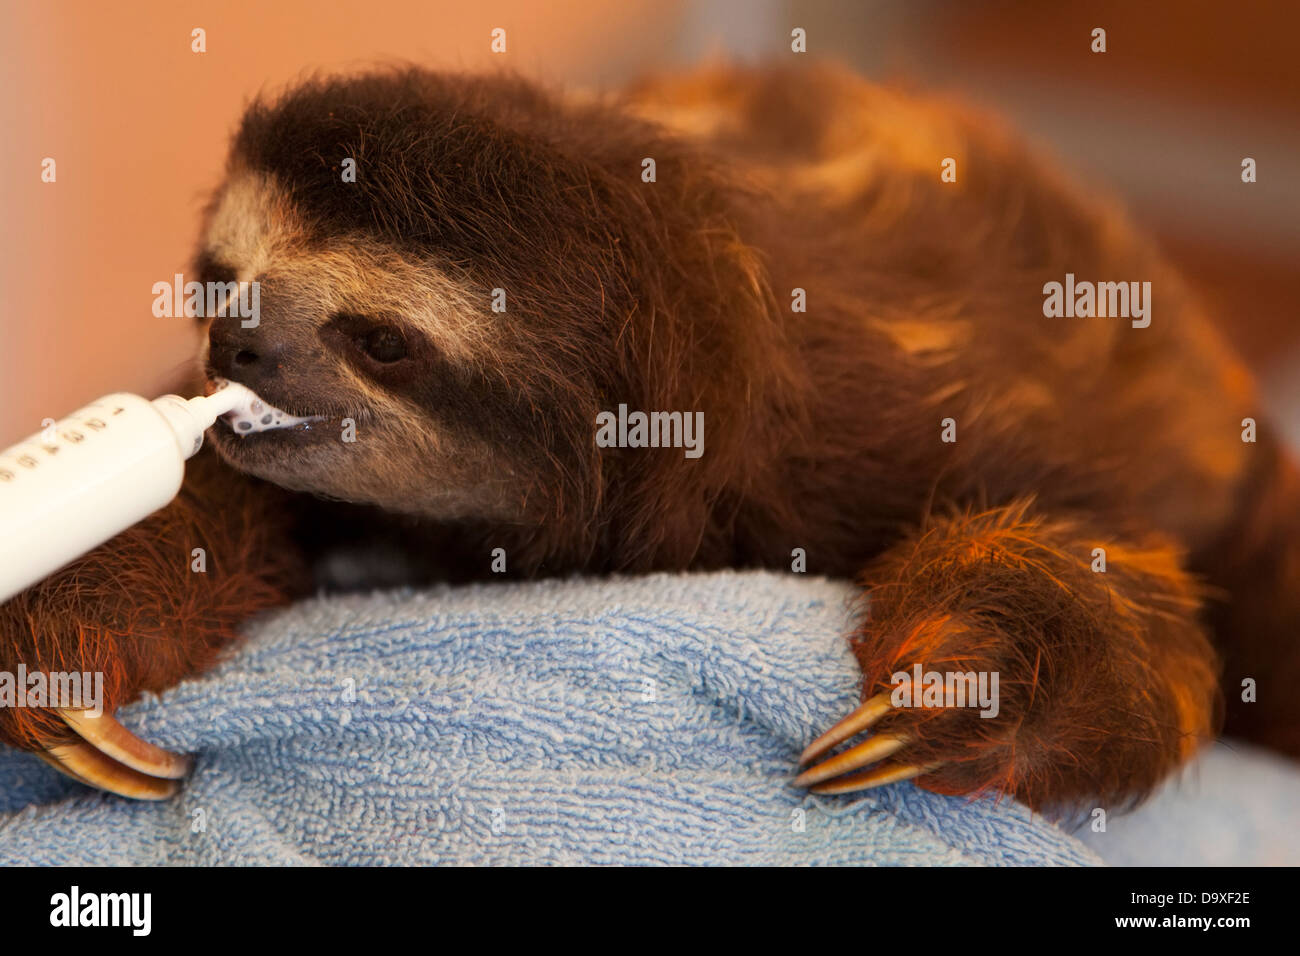 Baby orphaned Brown-throated Three-toed Sloth (Bradypus variegatus) drinking milk through a syringe in Sloth Sanctuary - Stock Image